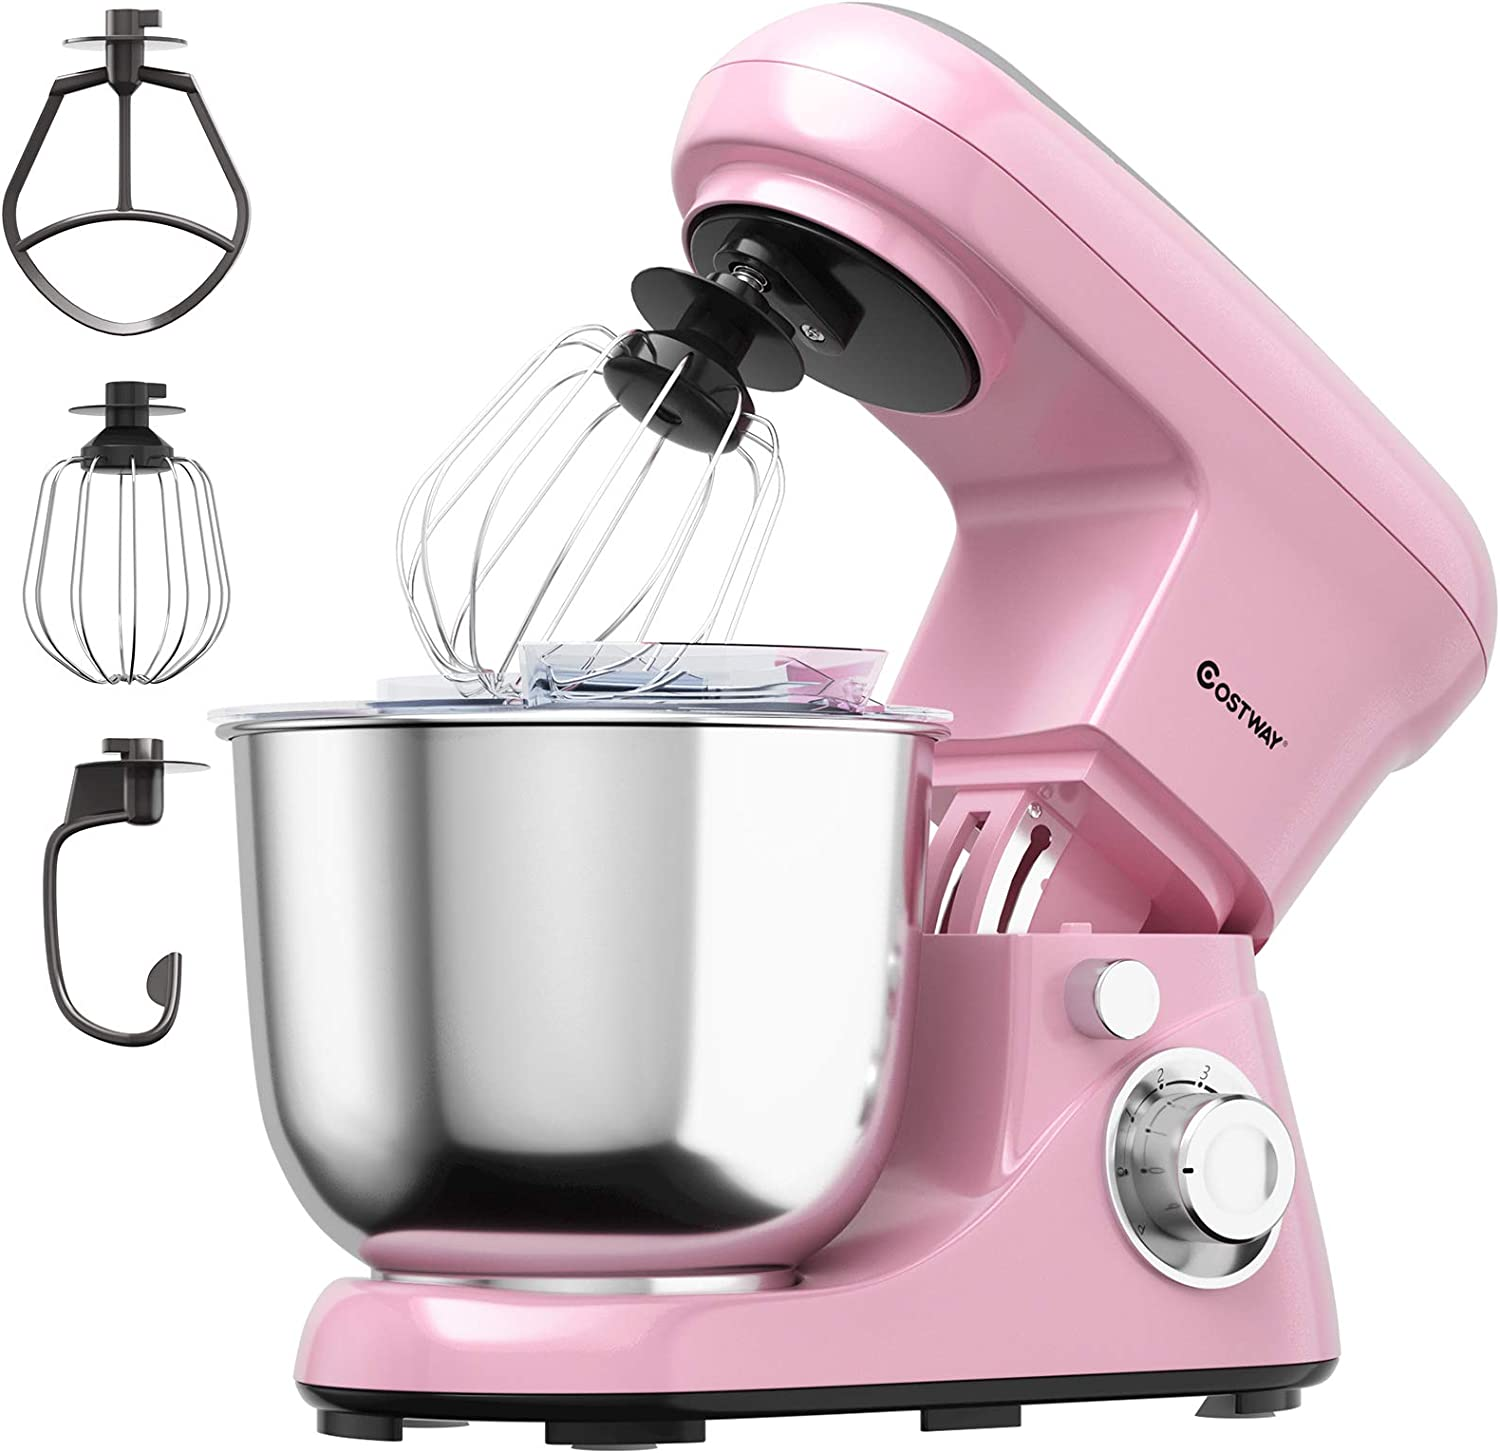 COSTWAY Stand Mixer, 6-Speed Tilt-Head Stand Mixer, 500W, Kitchen Electric Mixer with Dough Hook, Beater, Whisk, 5.3 Quart Stainless Steel Mixing Bowl and Splash Guard (Pink)